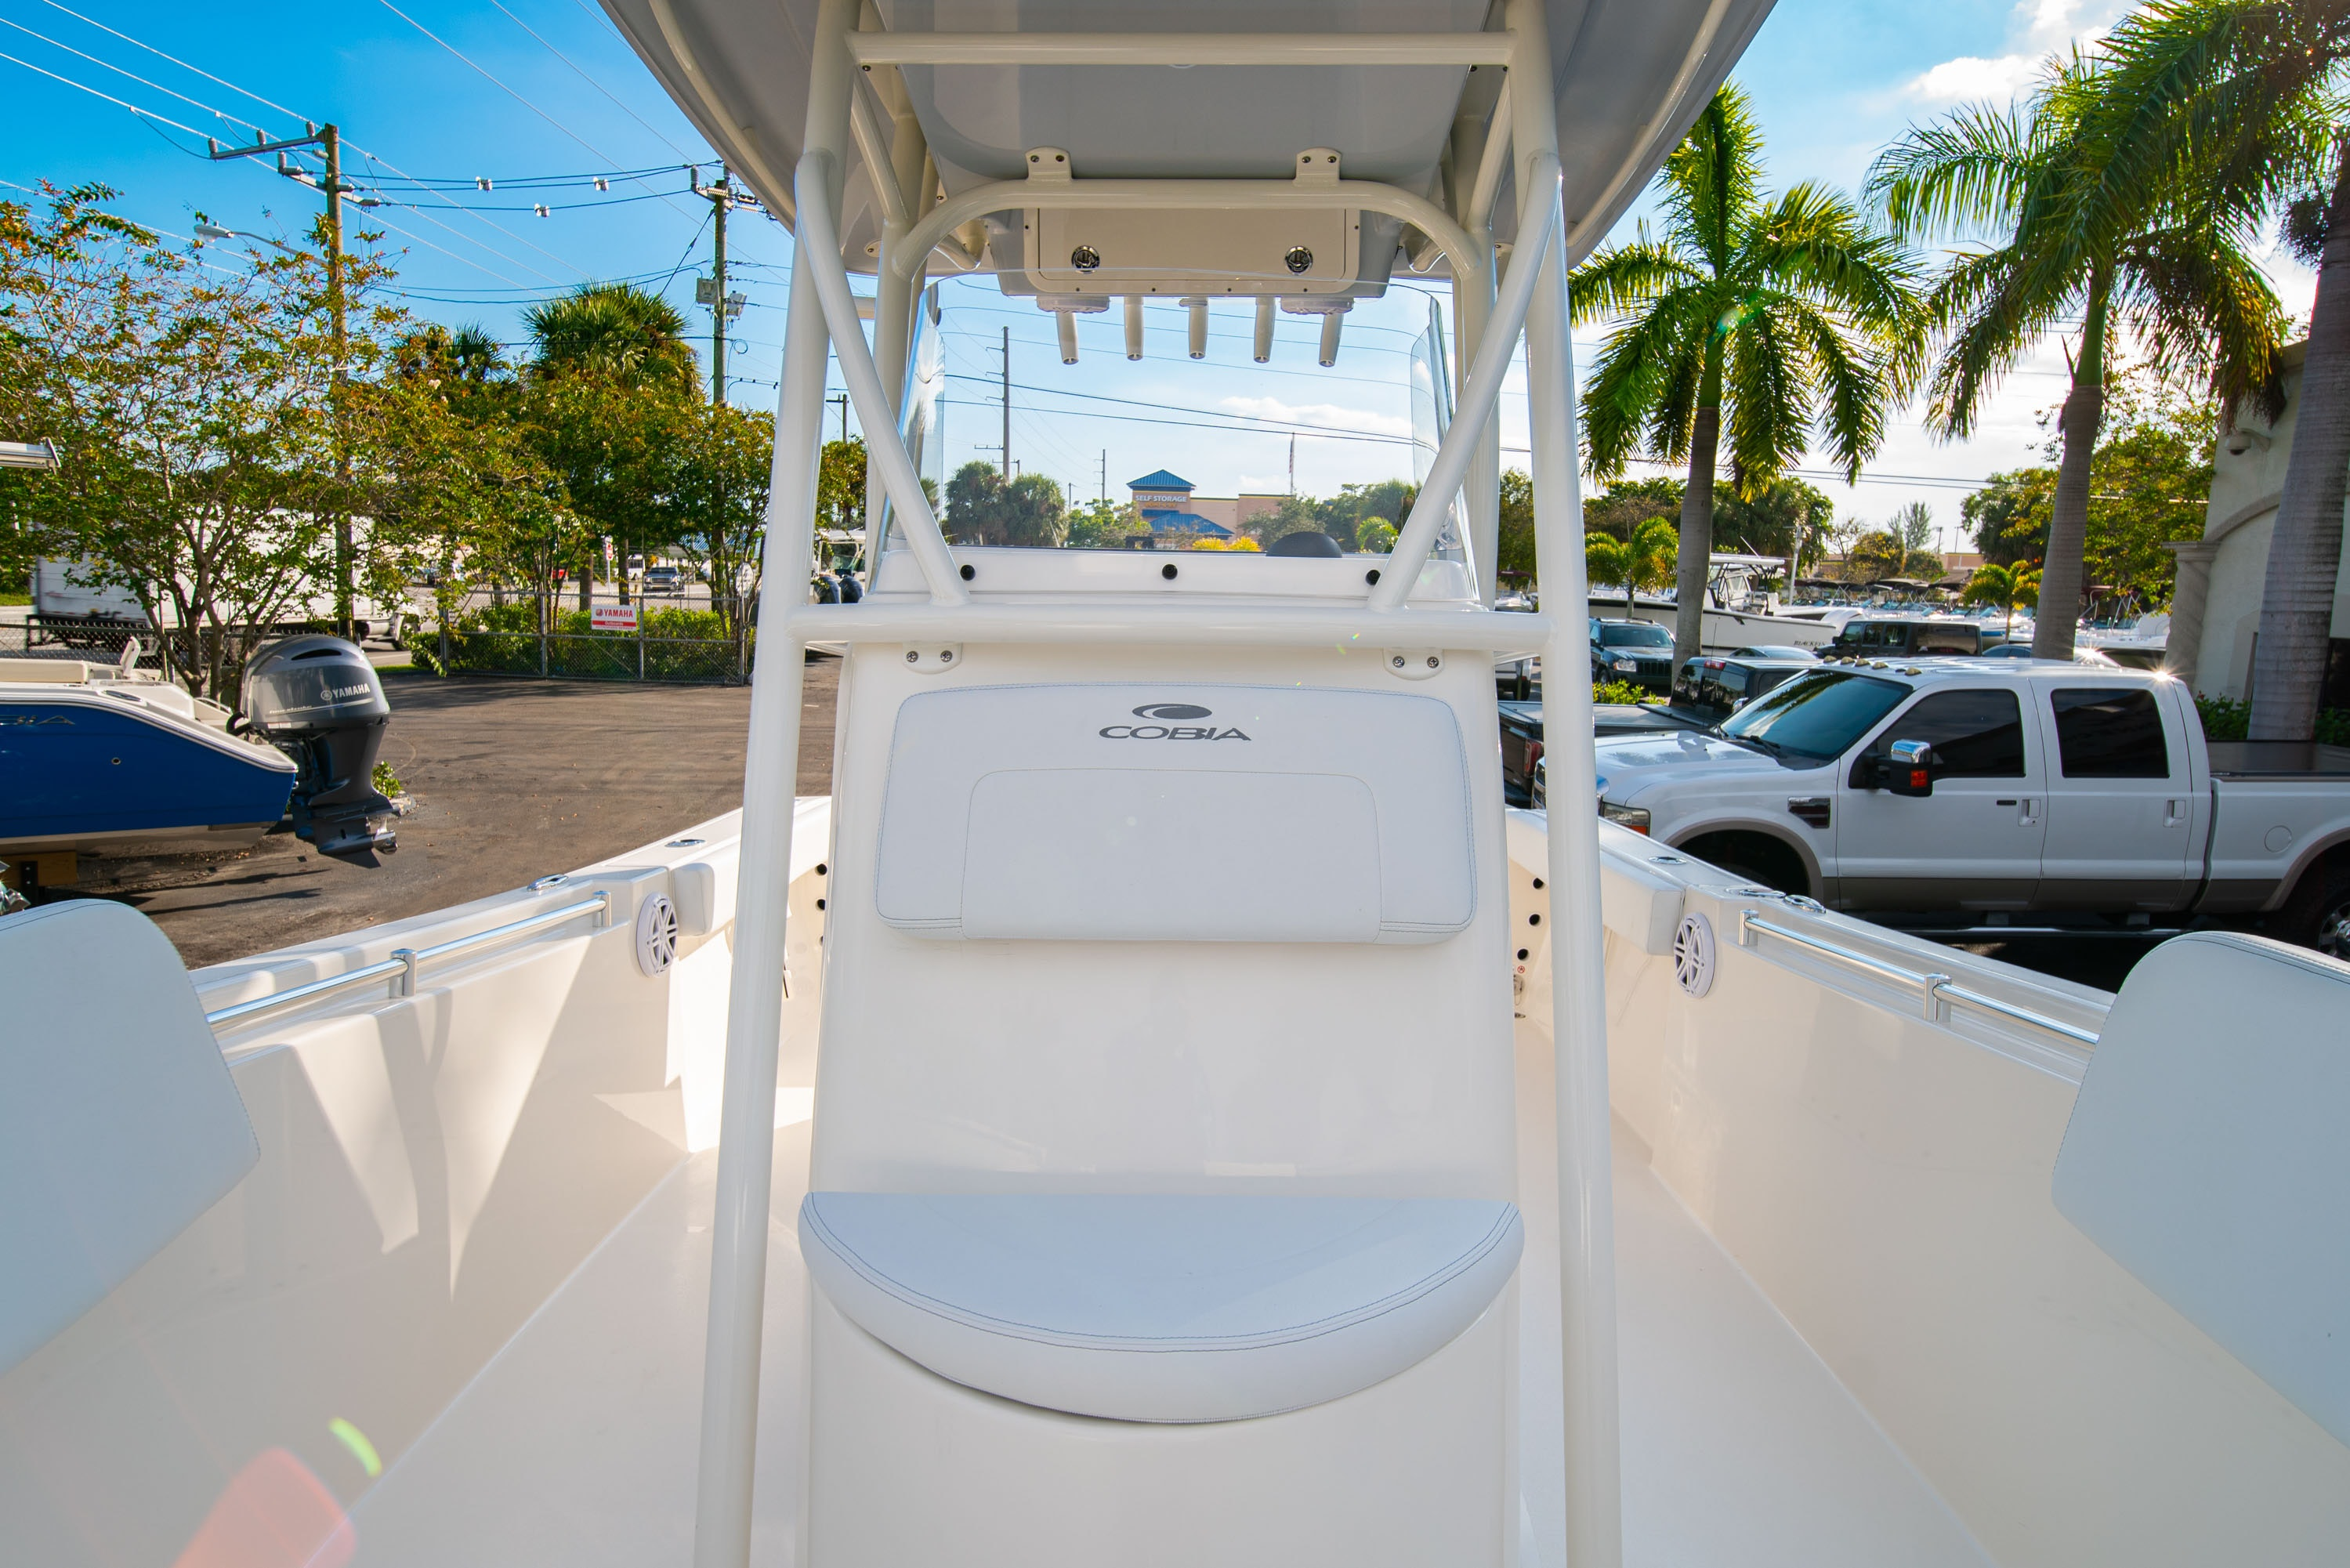 Thumbnail 38 for New 2020 Cobia 220 CC boat for sale in West Palm Beach, FL